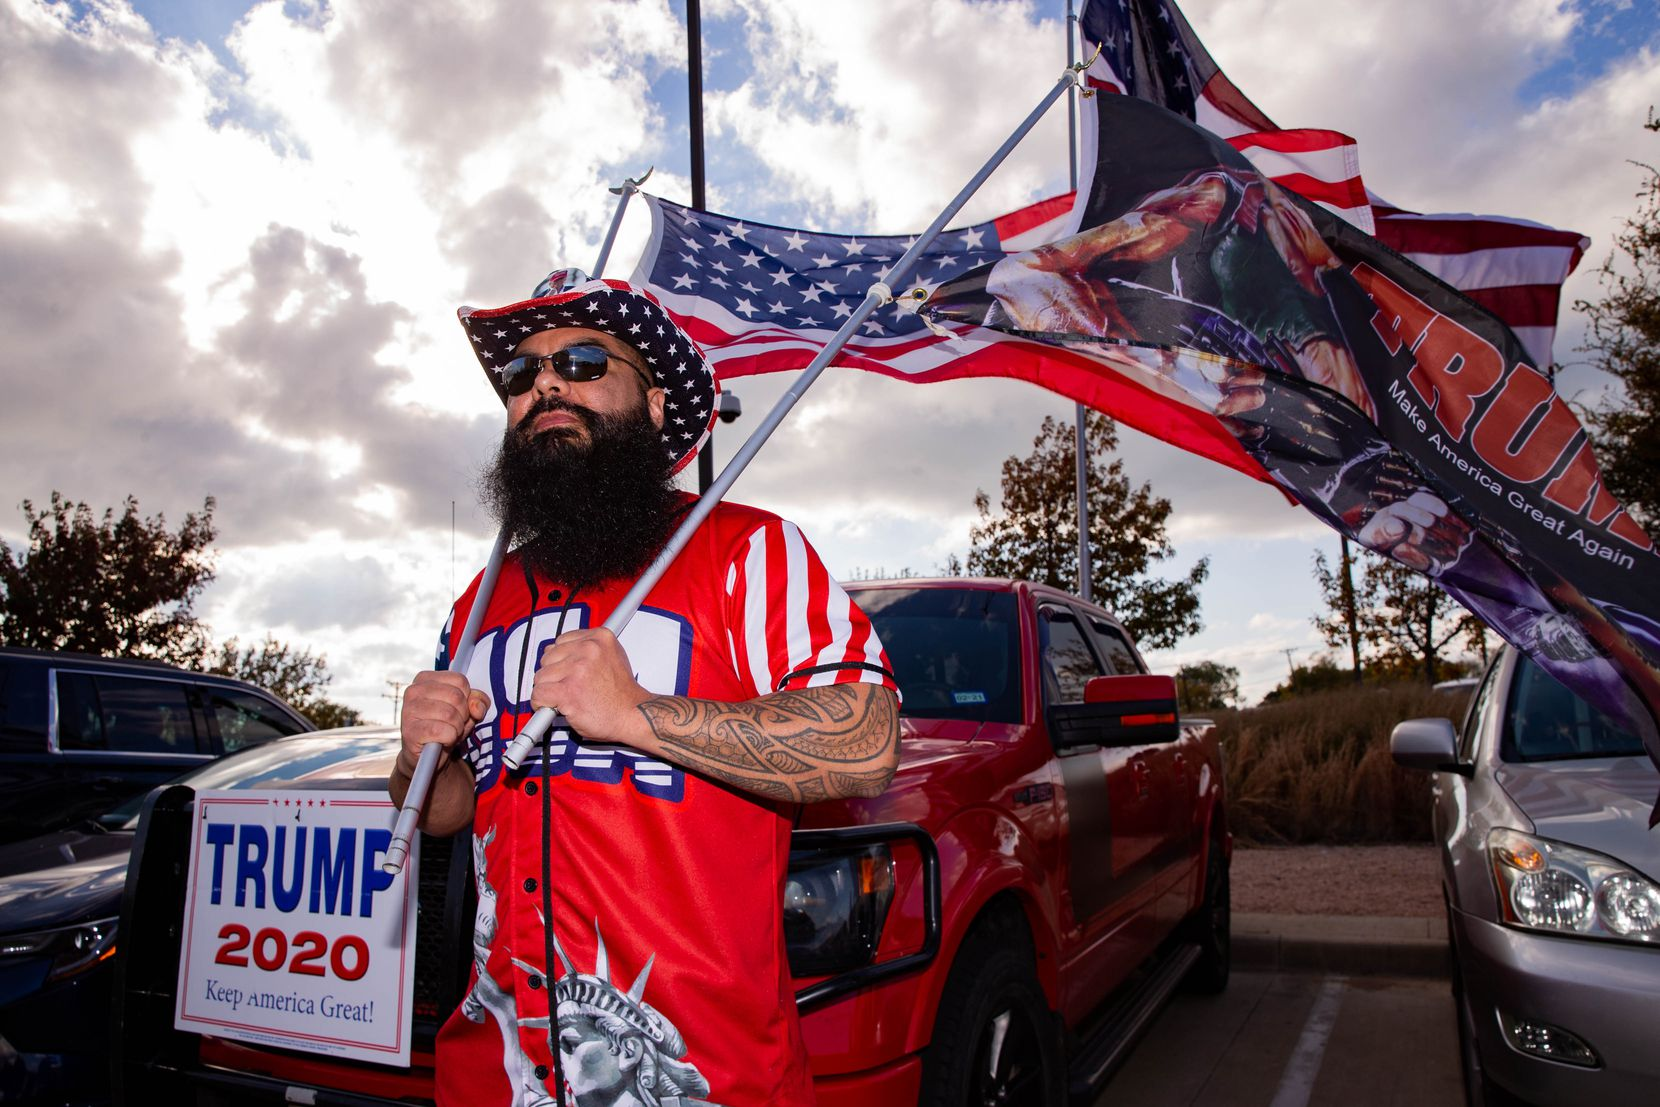 John Varela from Van Zandt County flies his flags in support of President Donald Trump during an America is Great rally hosted by TrumpTrain 2020 DFW at Rockwall County Courthouse in Rockwall on Sunday, Nov. 8, 2020.